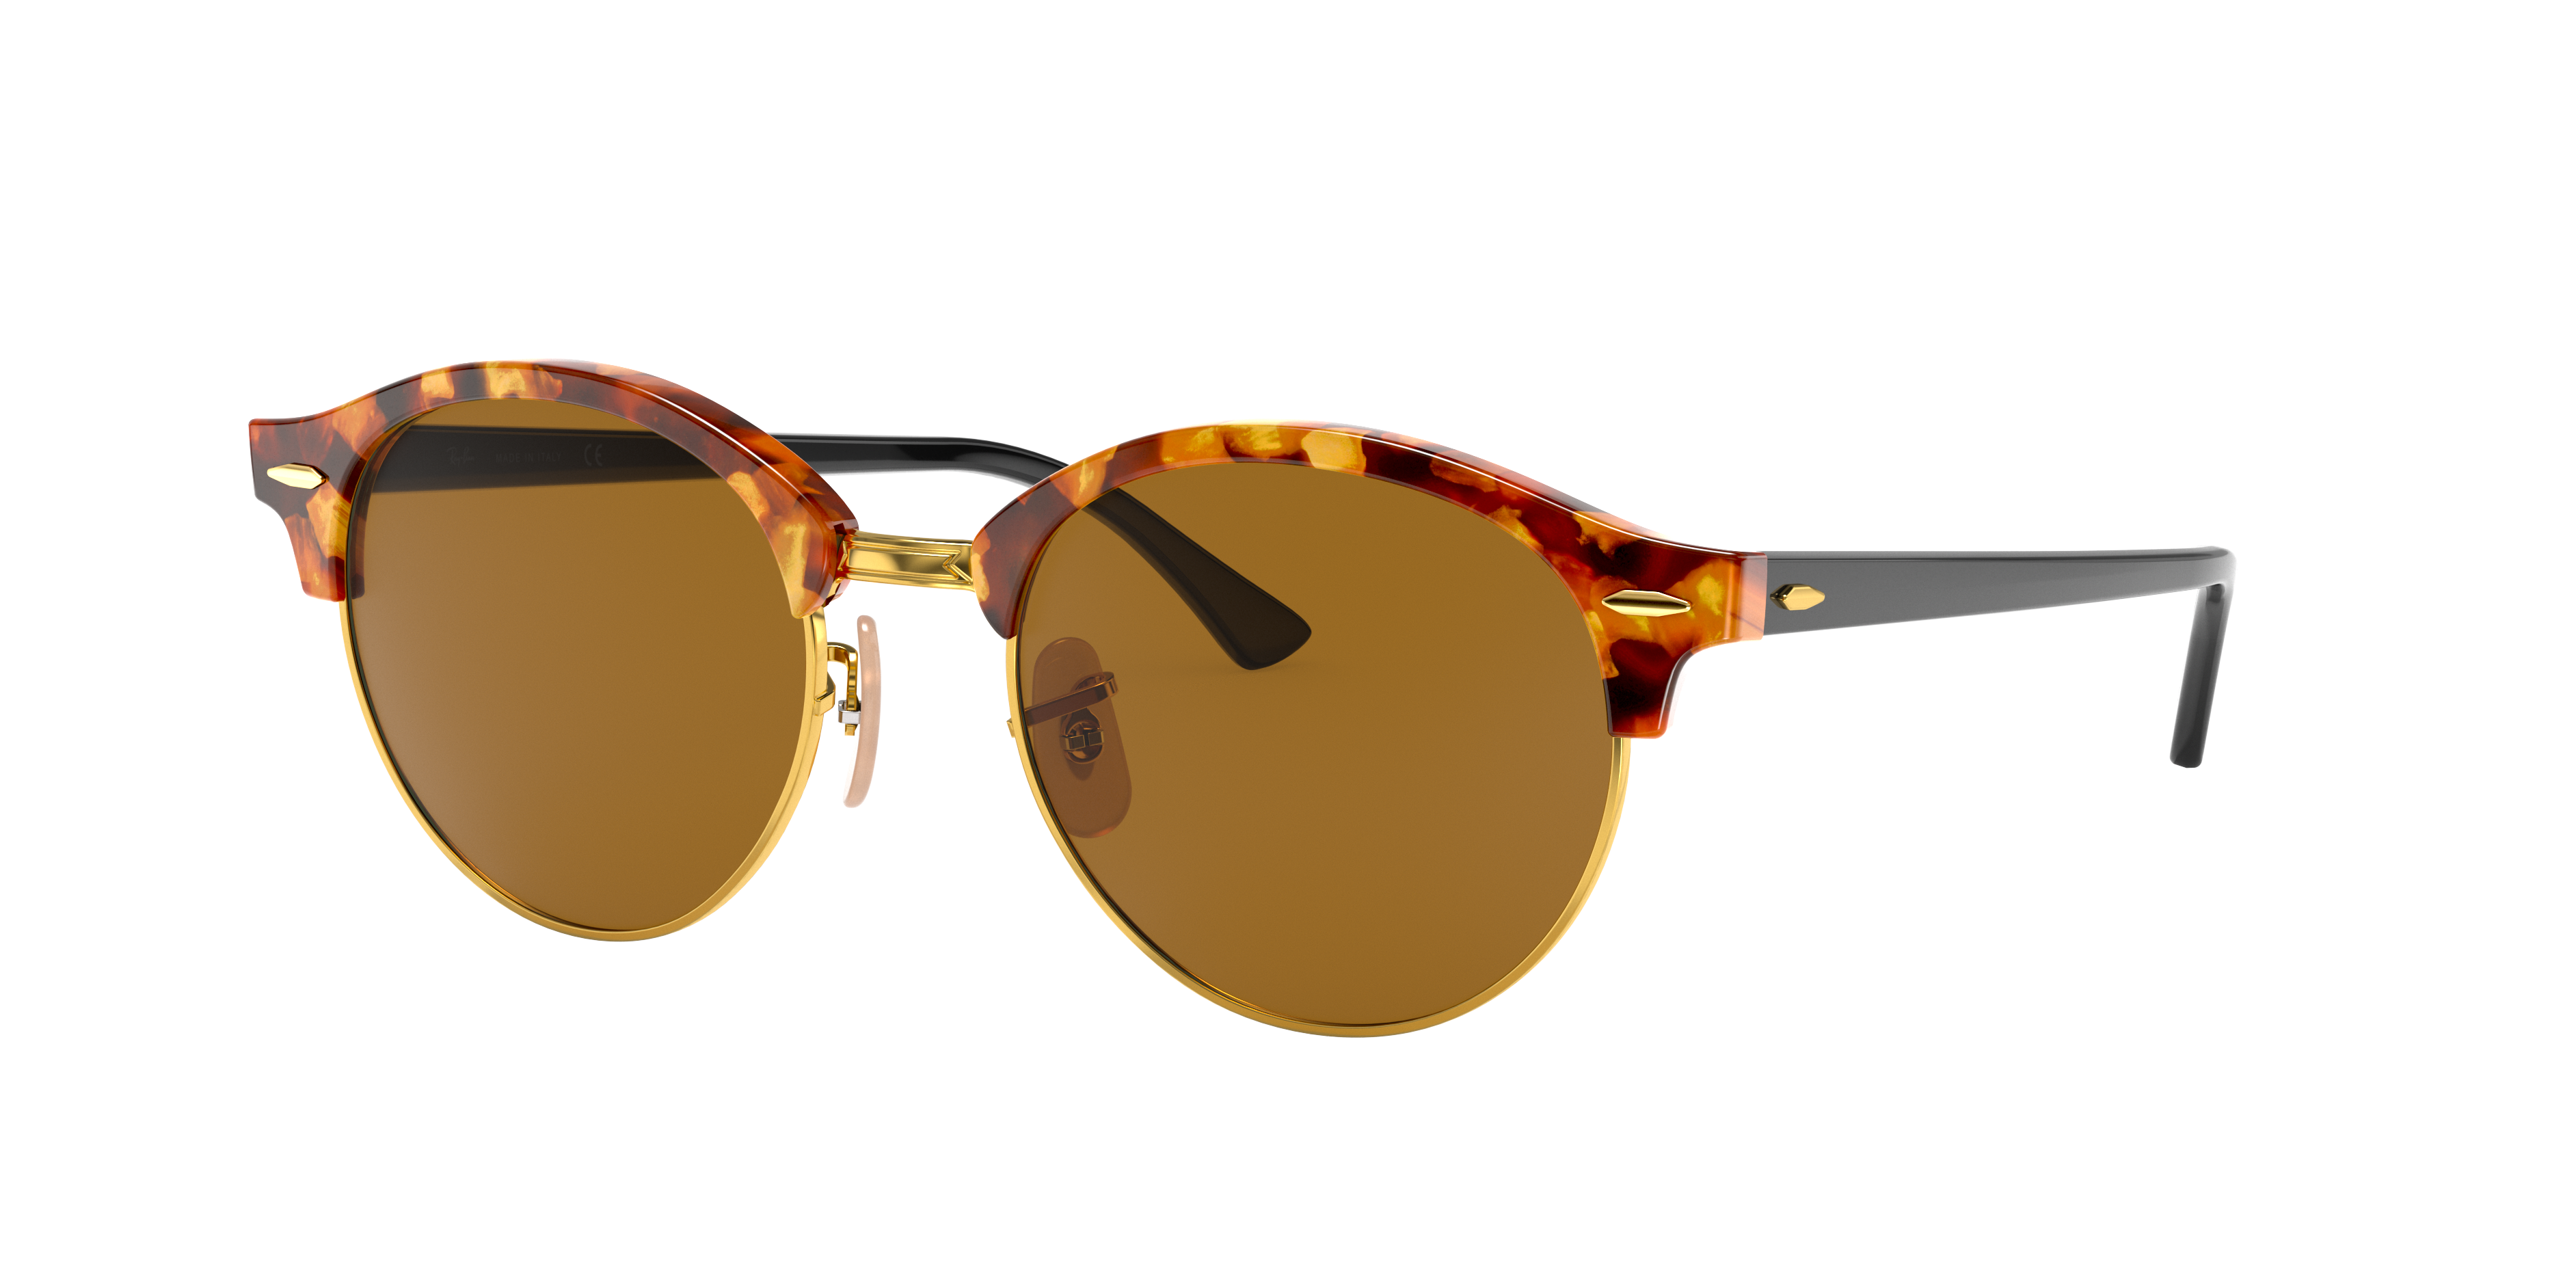 Ray-Ban Clubround Classic Black, Brown Lenses - RB4246